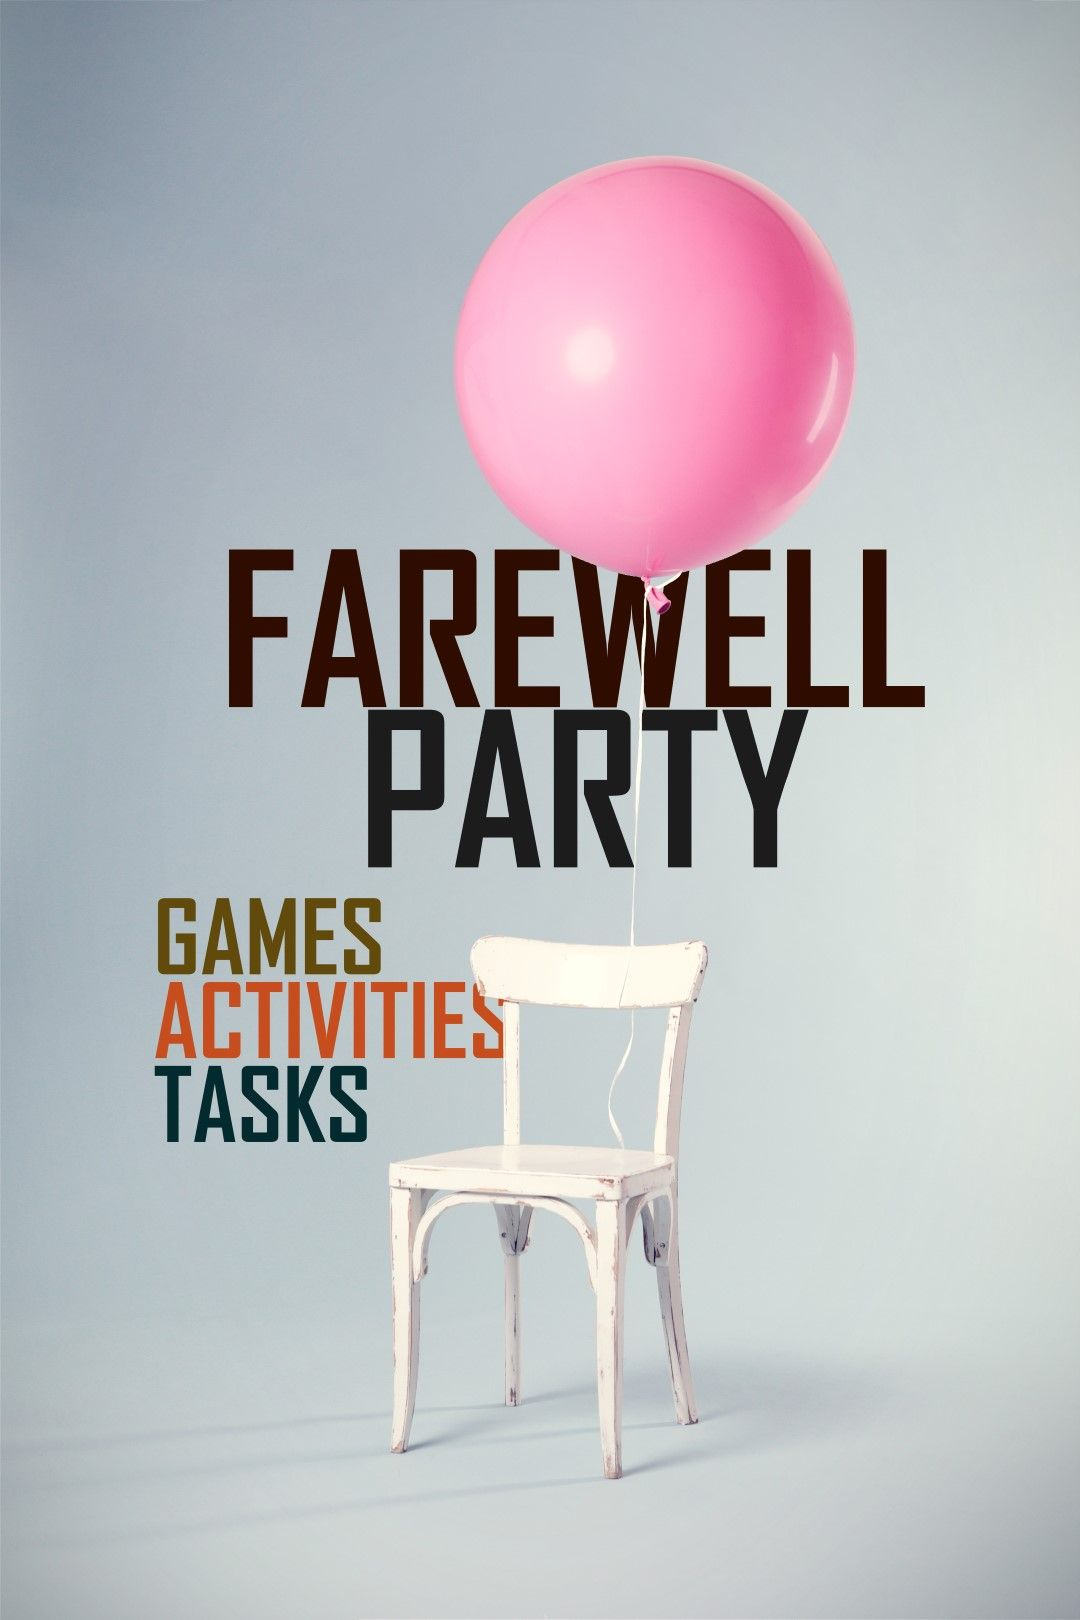 College Farewell Party Games Ideas and Activities